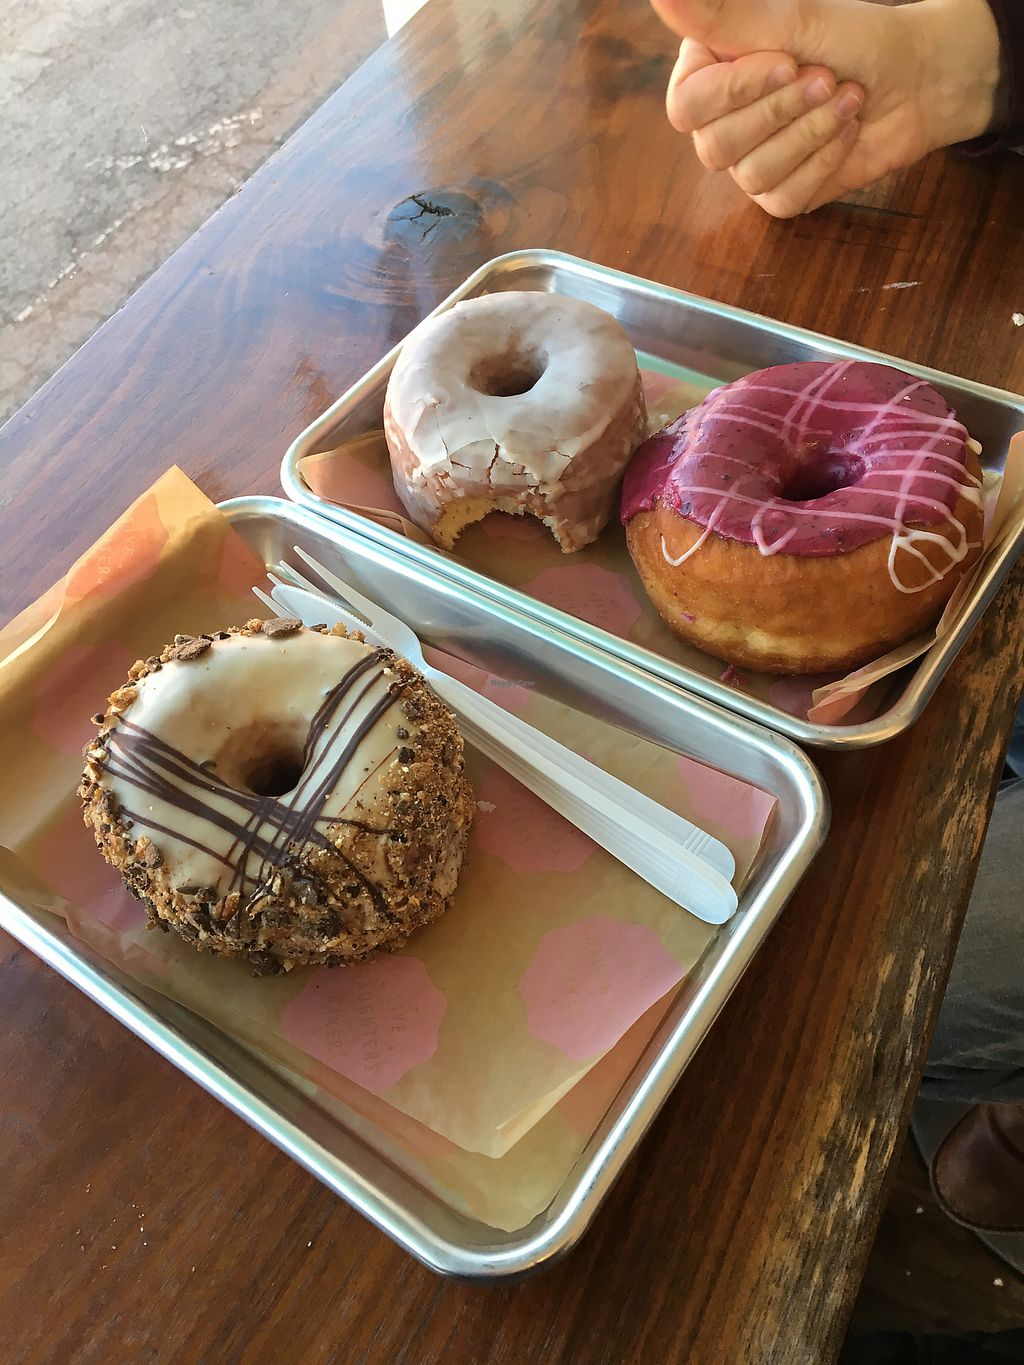 "Photo of Five Daughters Bakery - Caruthers Ave  by <a href=""/members/profile/Thepennsyltuckyvegan"">Thepennsyltuckyvegan</a> <br/>Best breakfast EVER <br/> March 14, 2018  - <a href='/contact/abuse/image/102158/370652'>Report</a>"